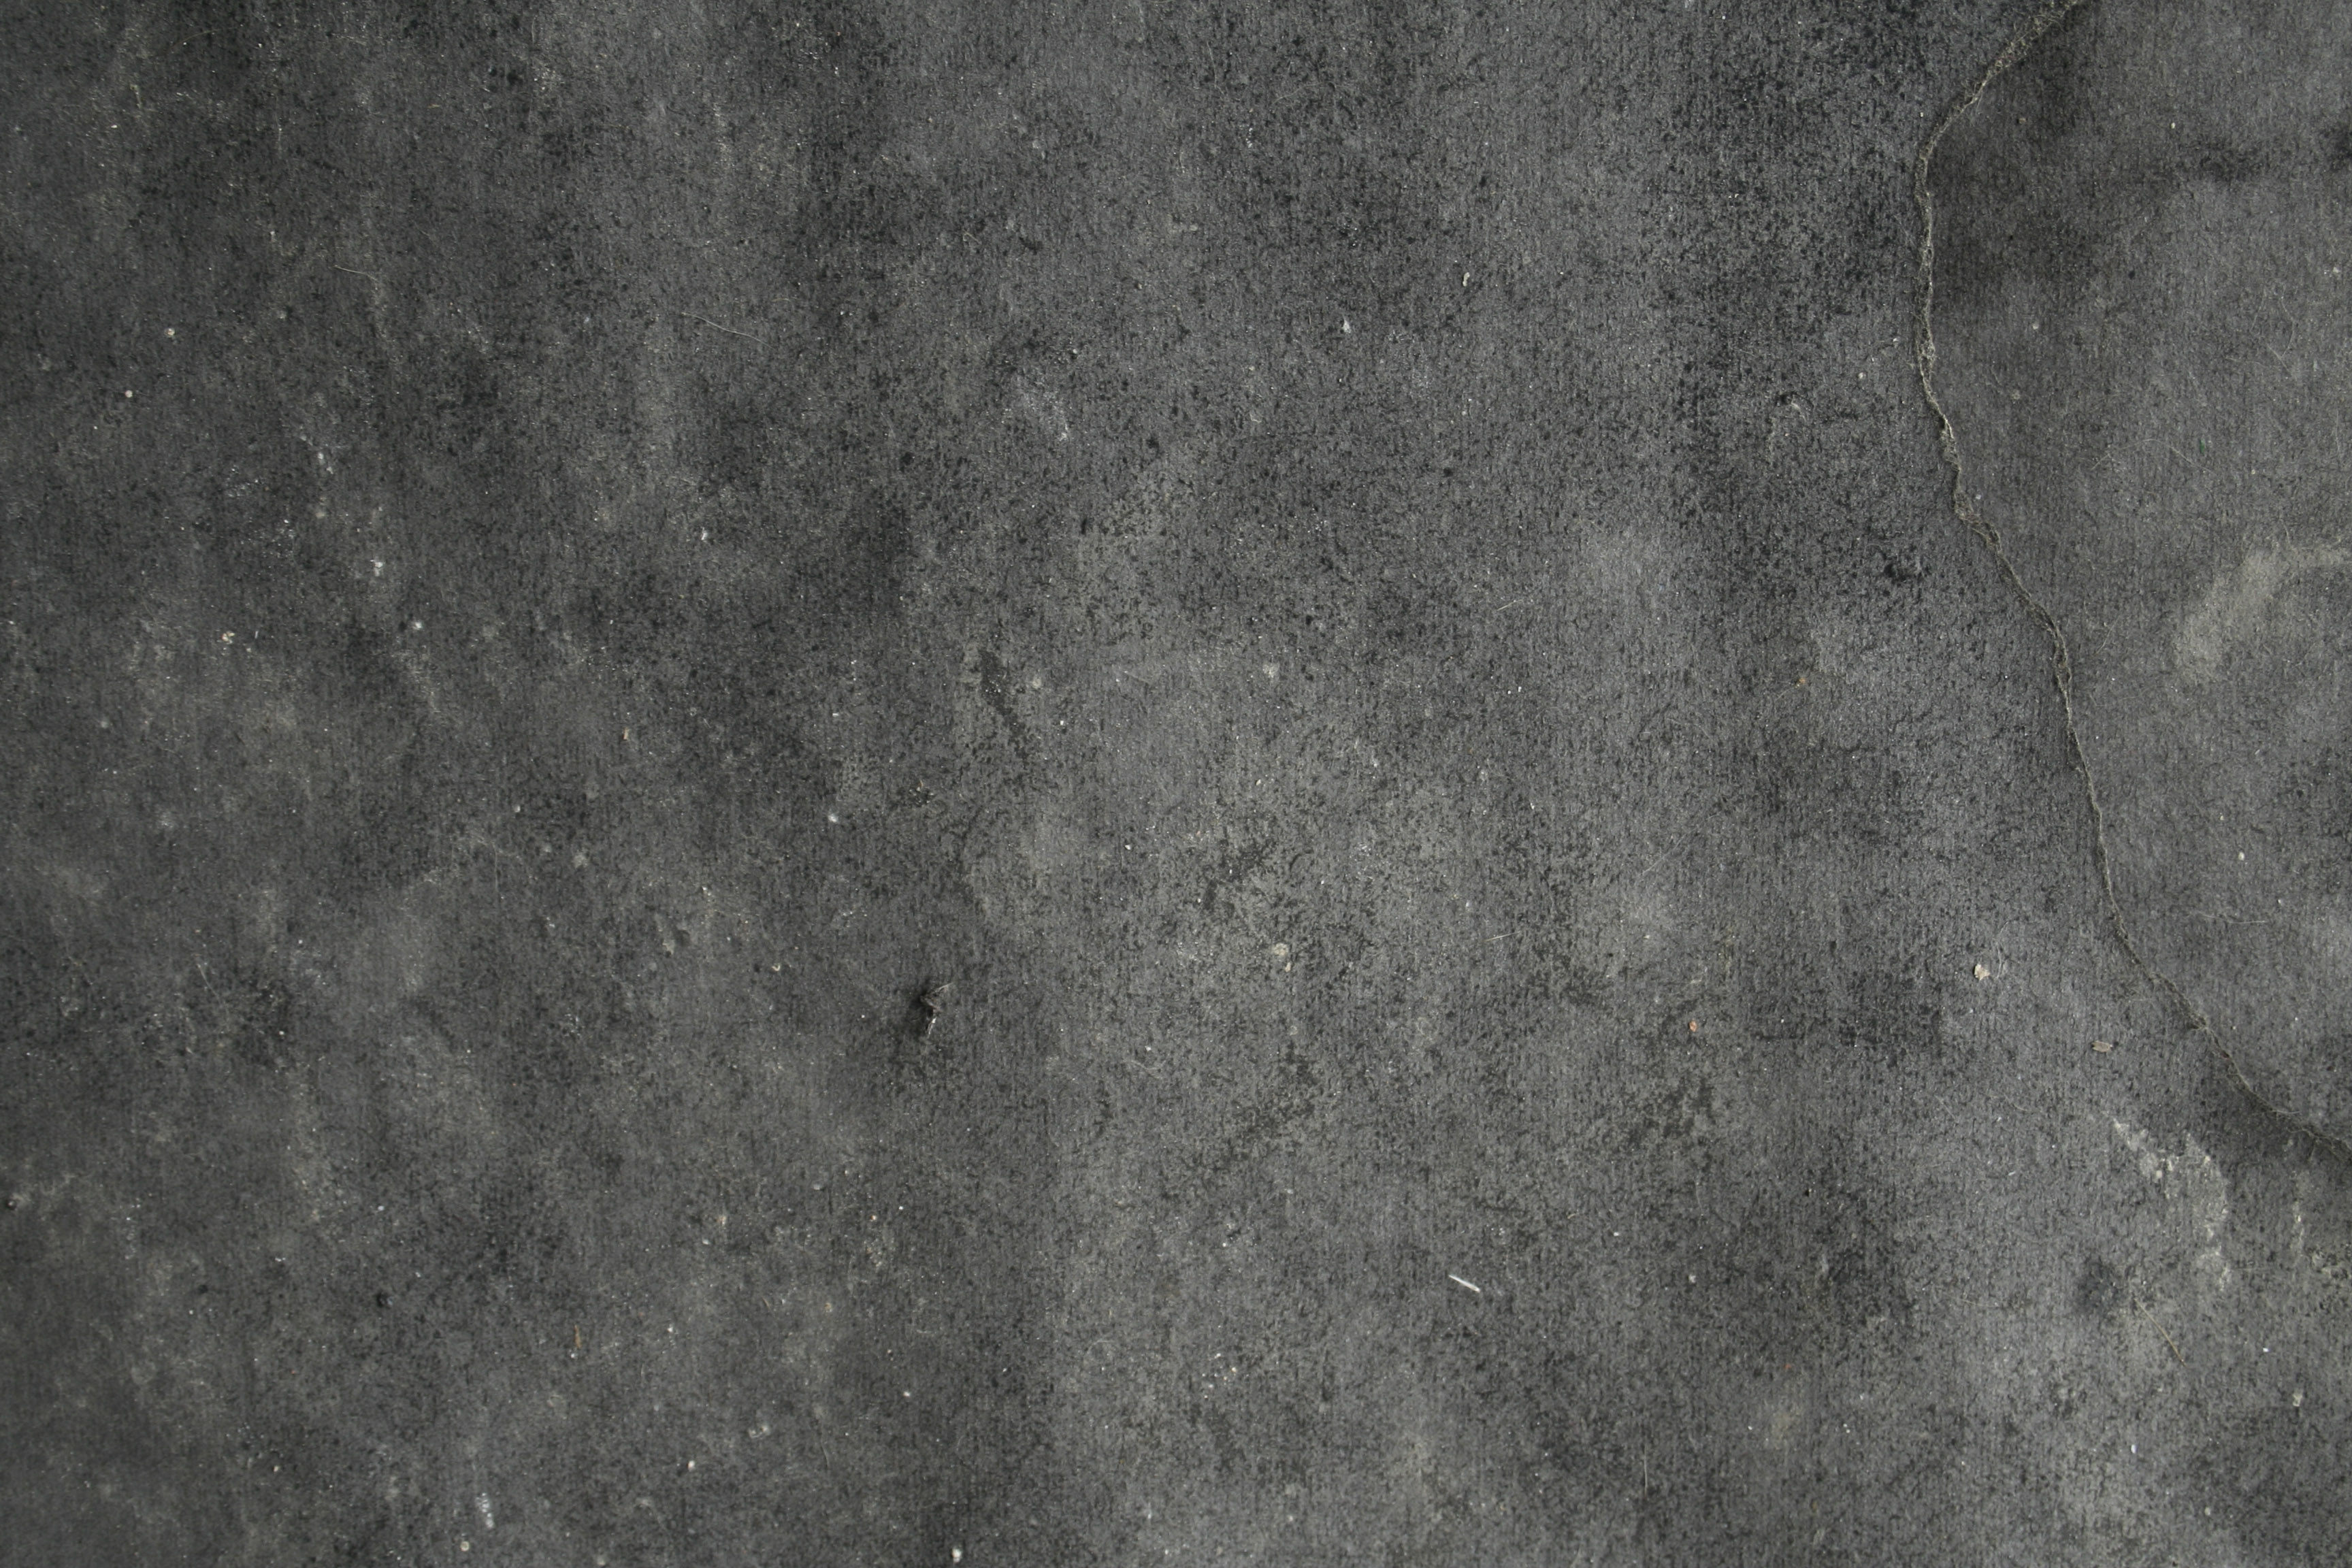 Wall Texture Photoshop